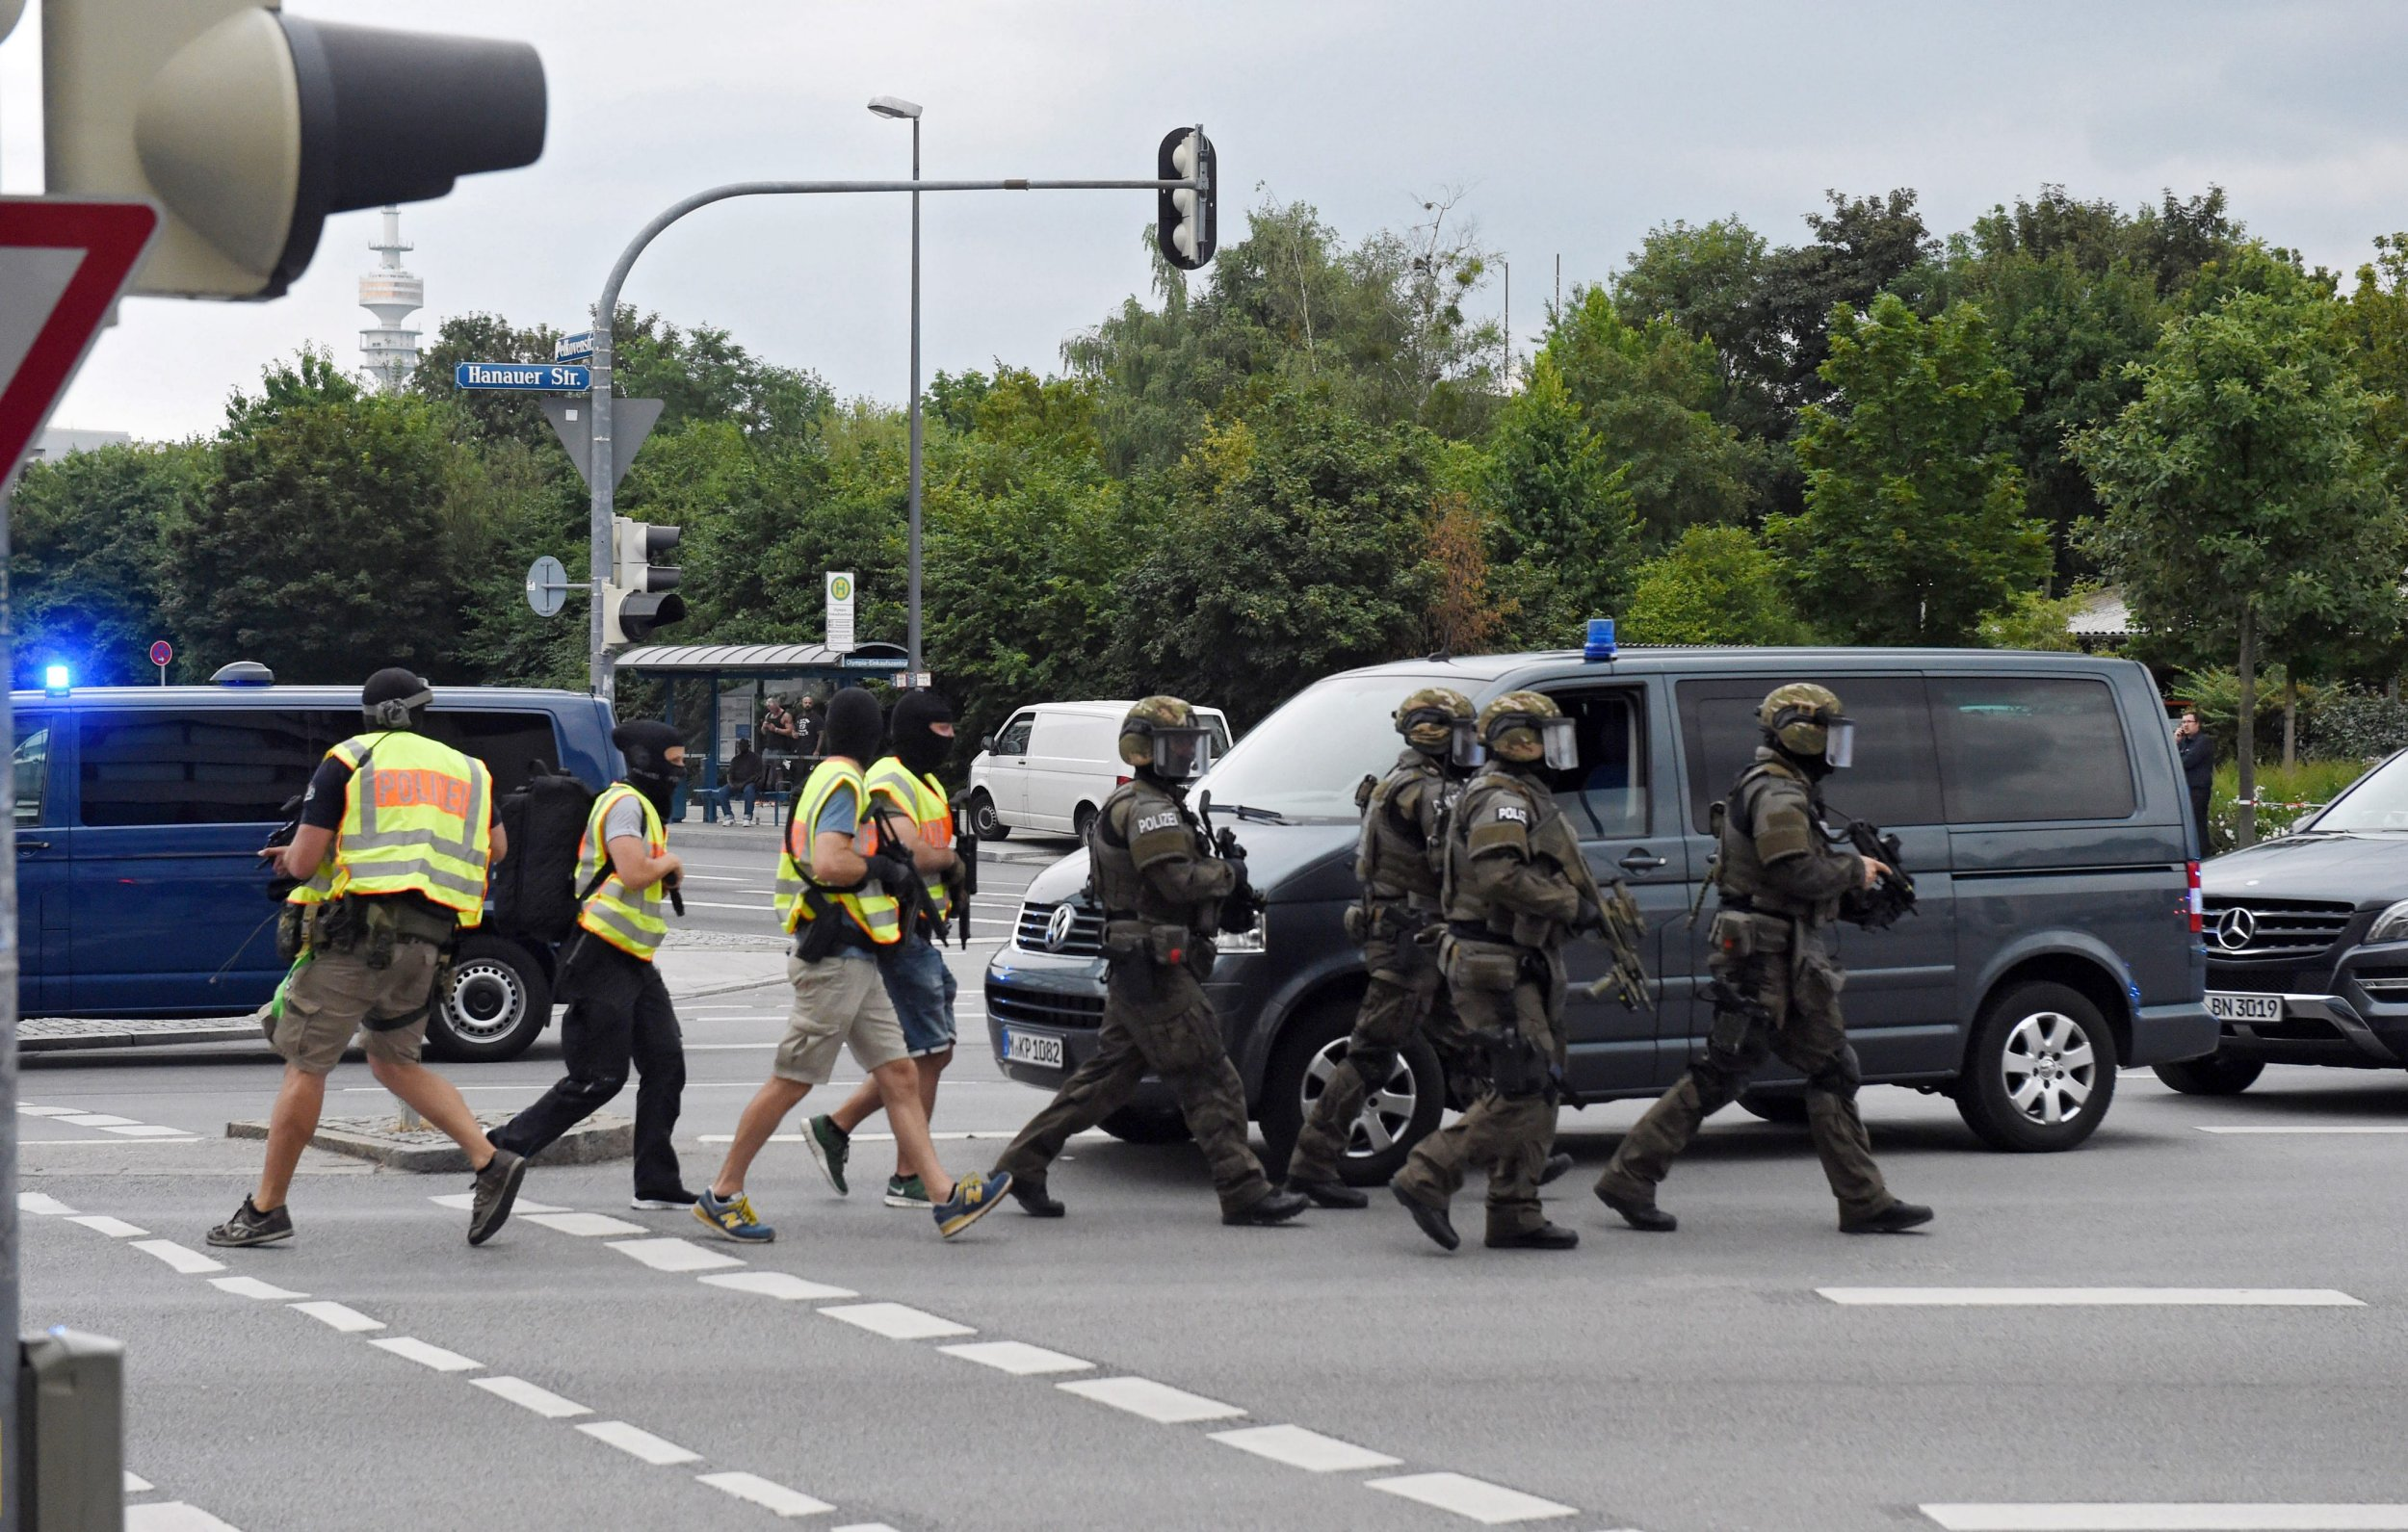 Munich attack was NOT terrorism but 'classic shooting rampage'